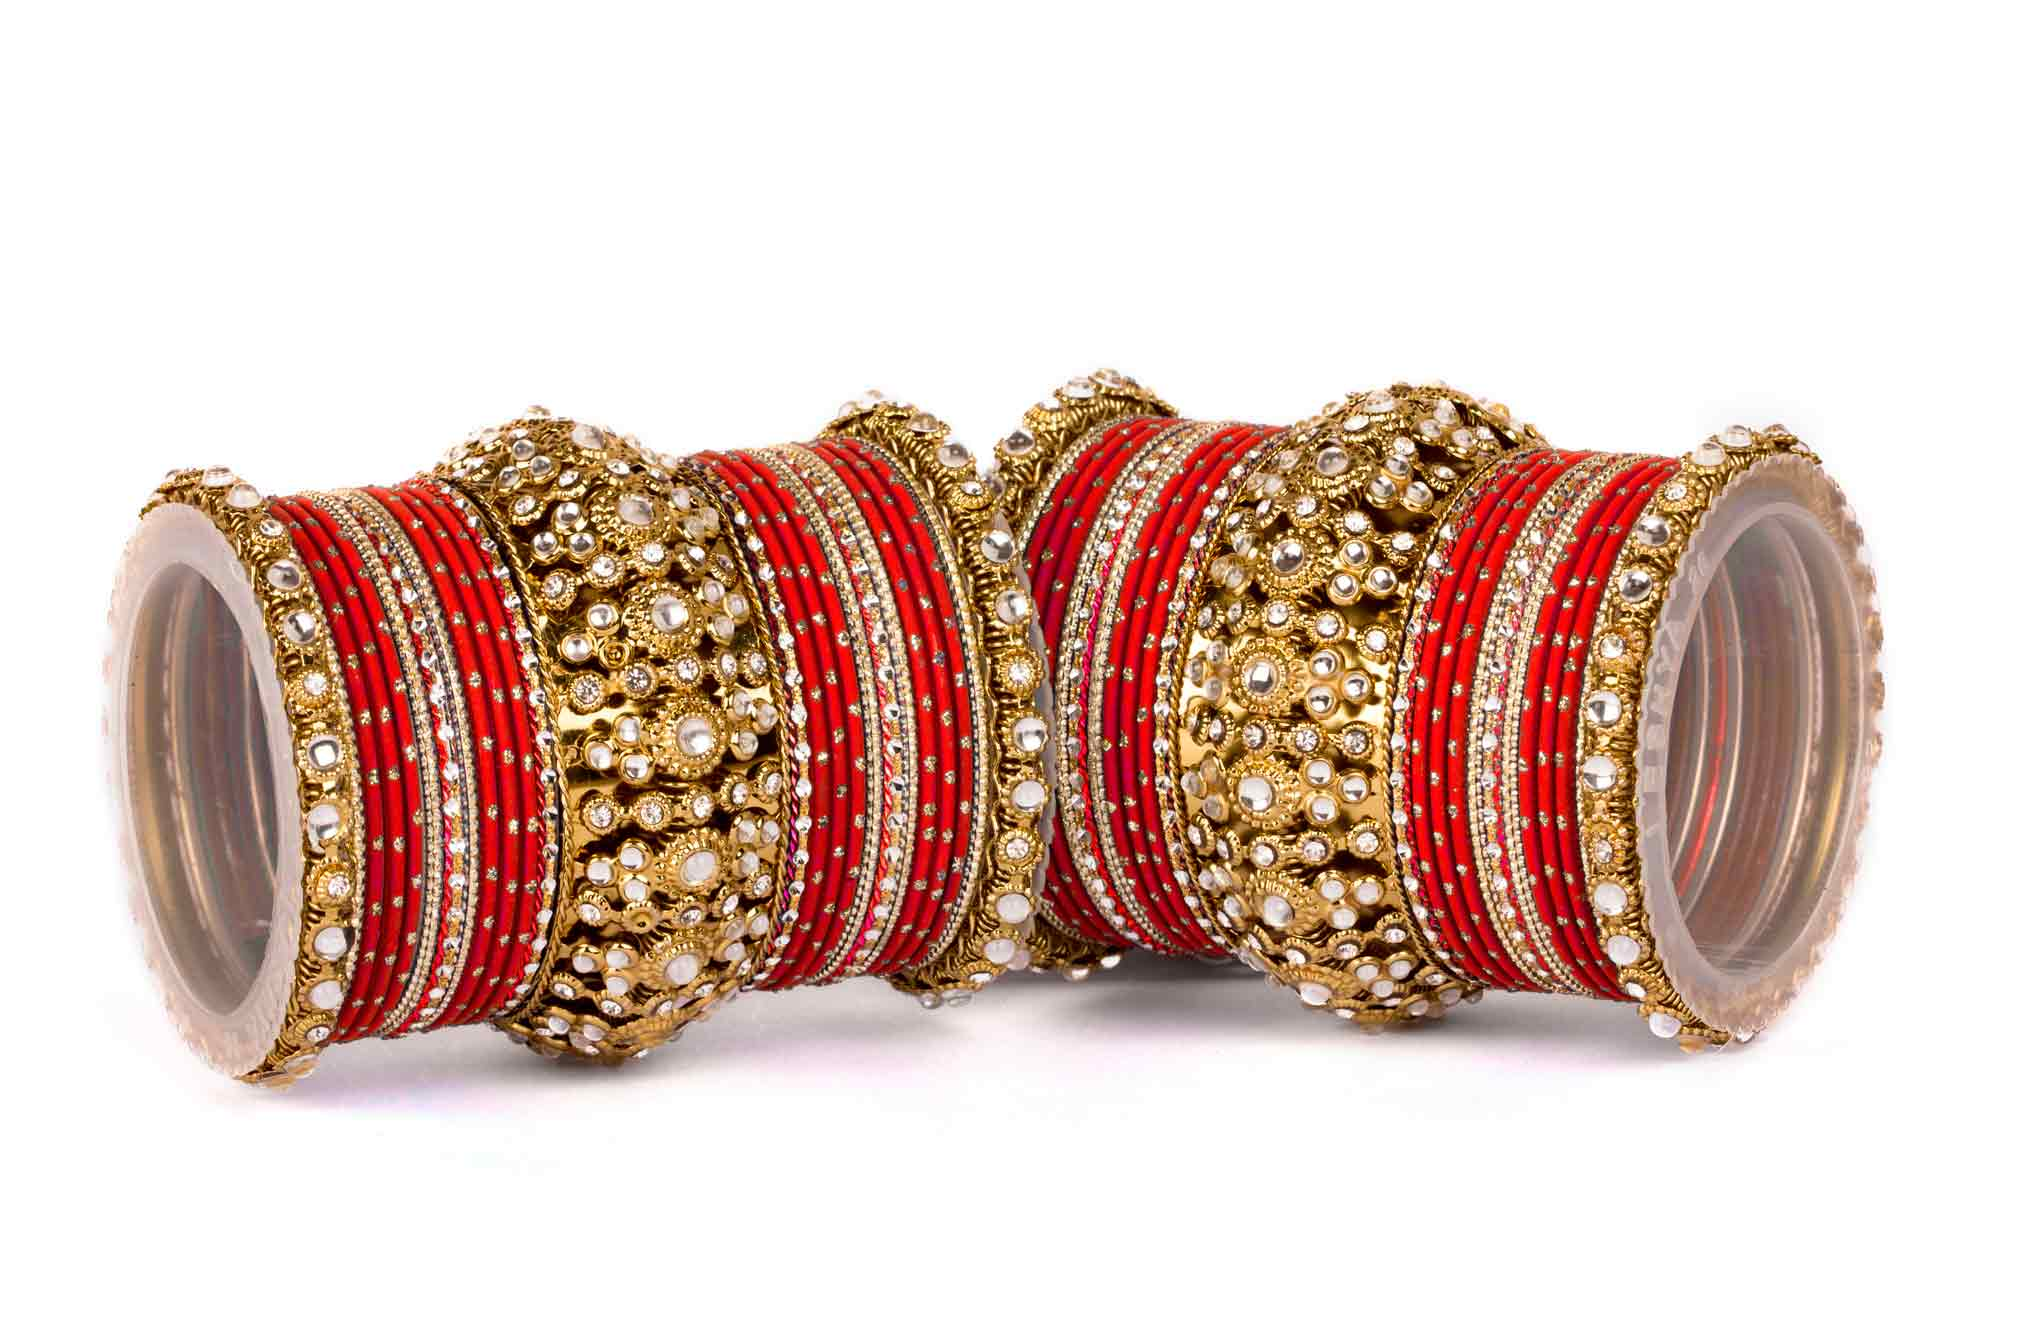 bangles bollywood indian golden pd buy chudi color ethnic ladies metal for products fashion